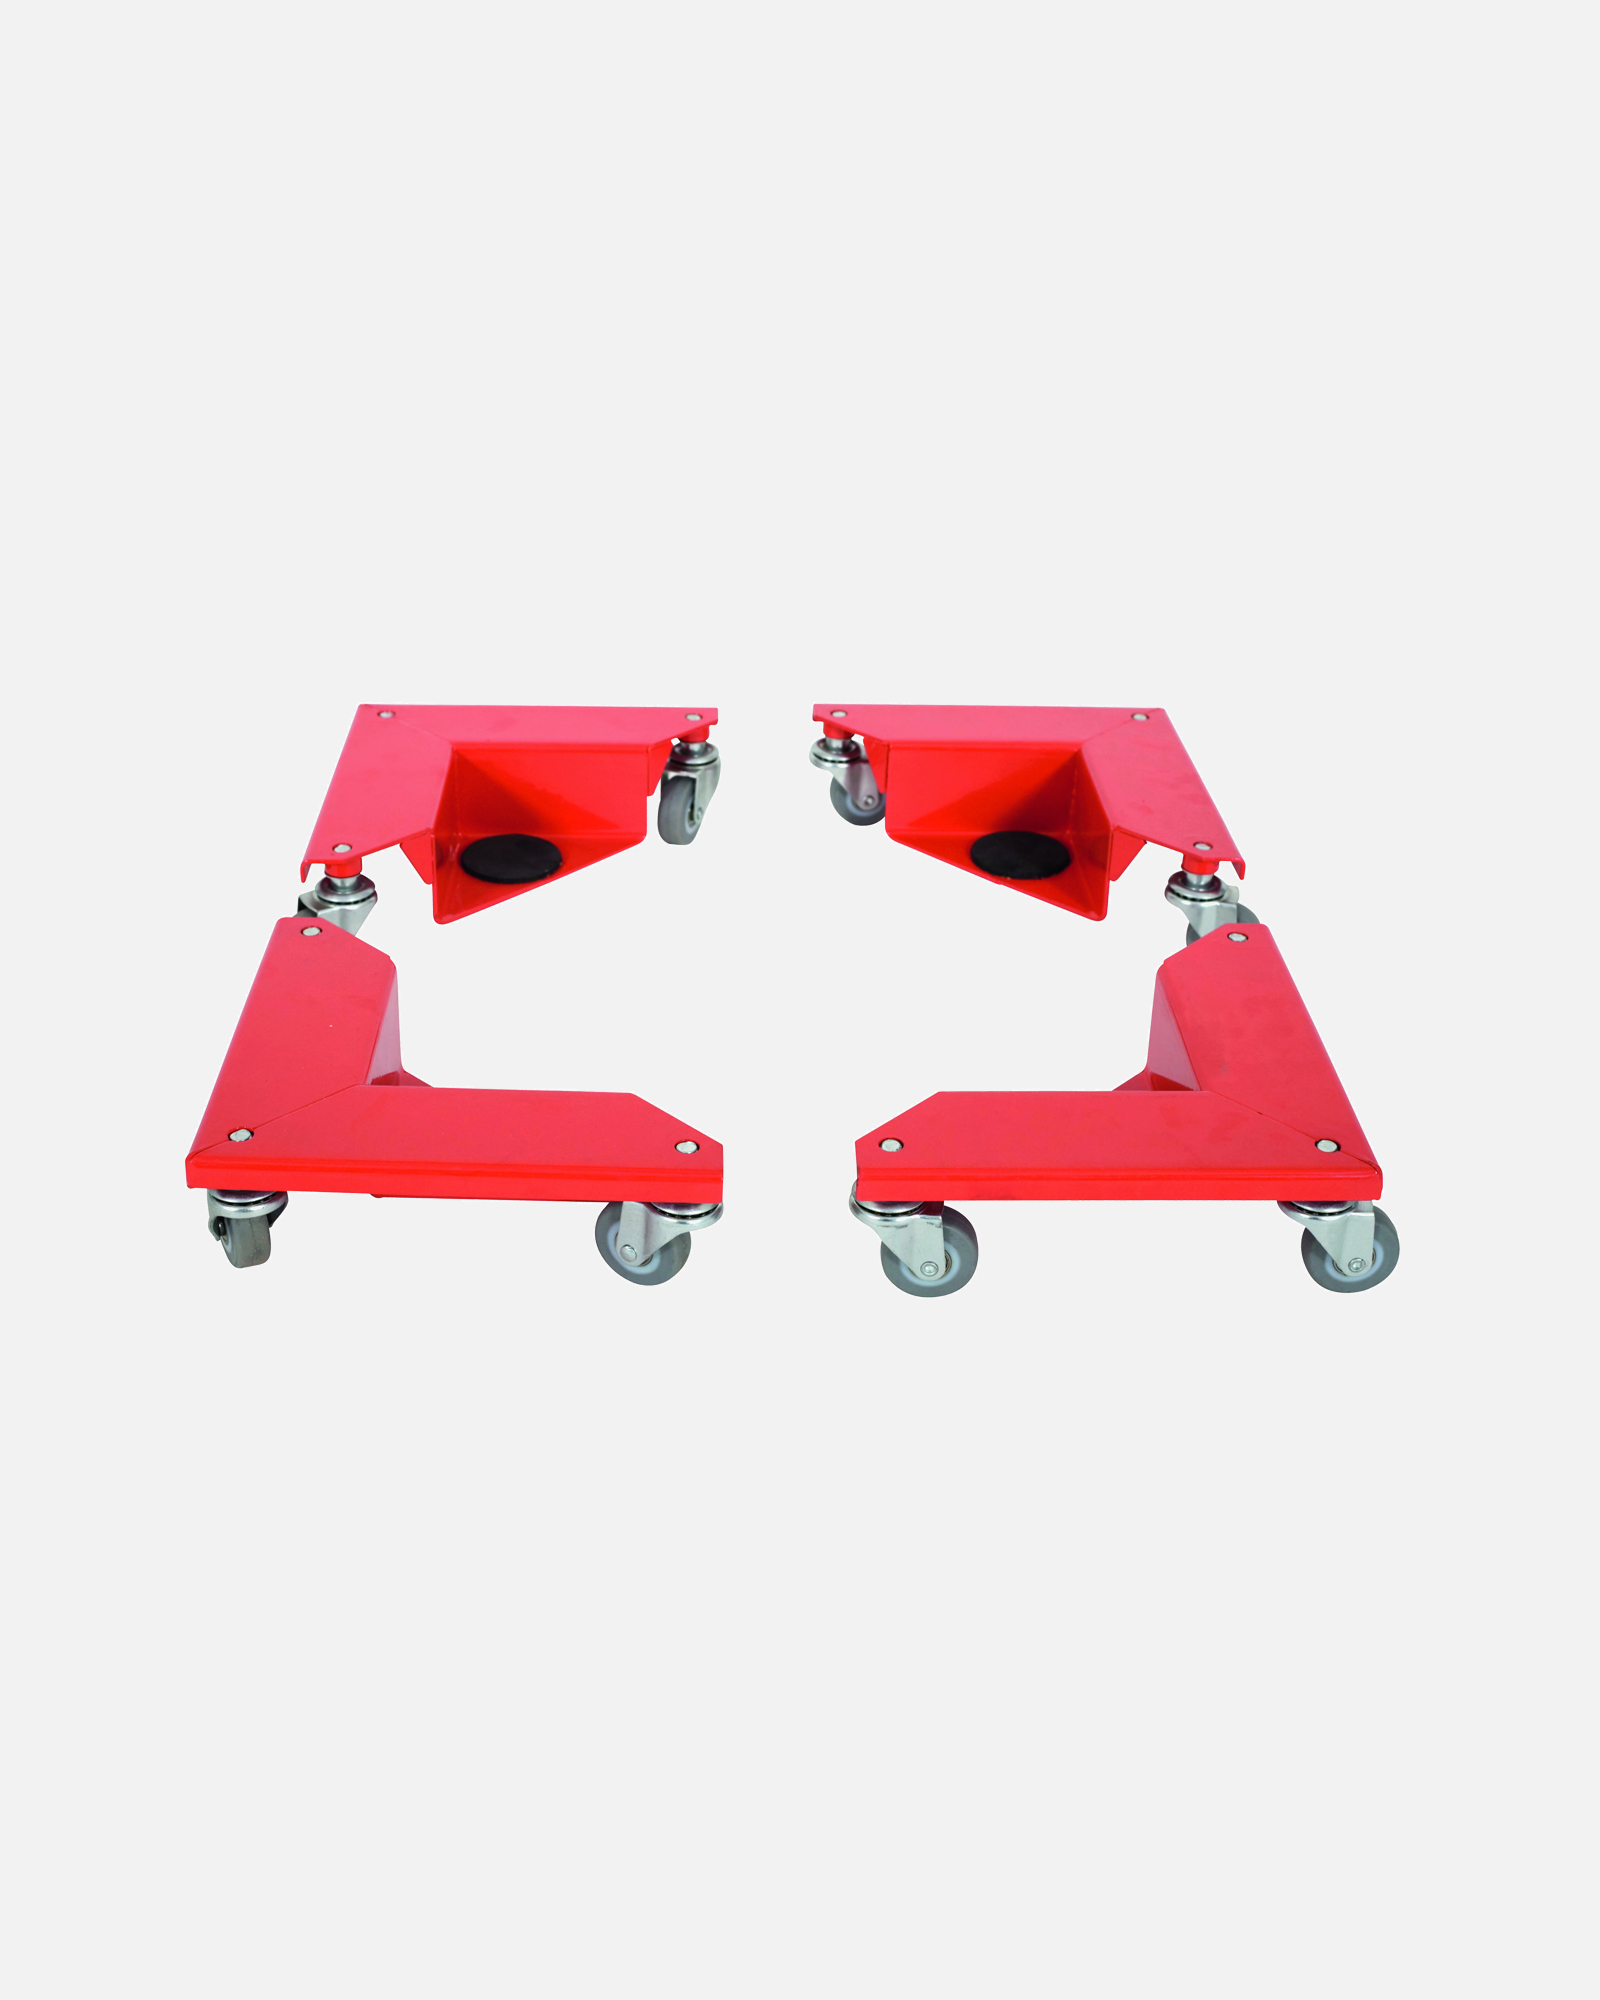 AR150 Transport Corner 4 Corners Cap 600kg